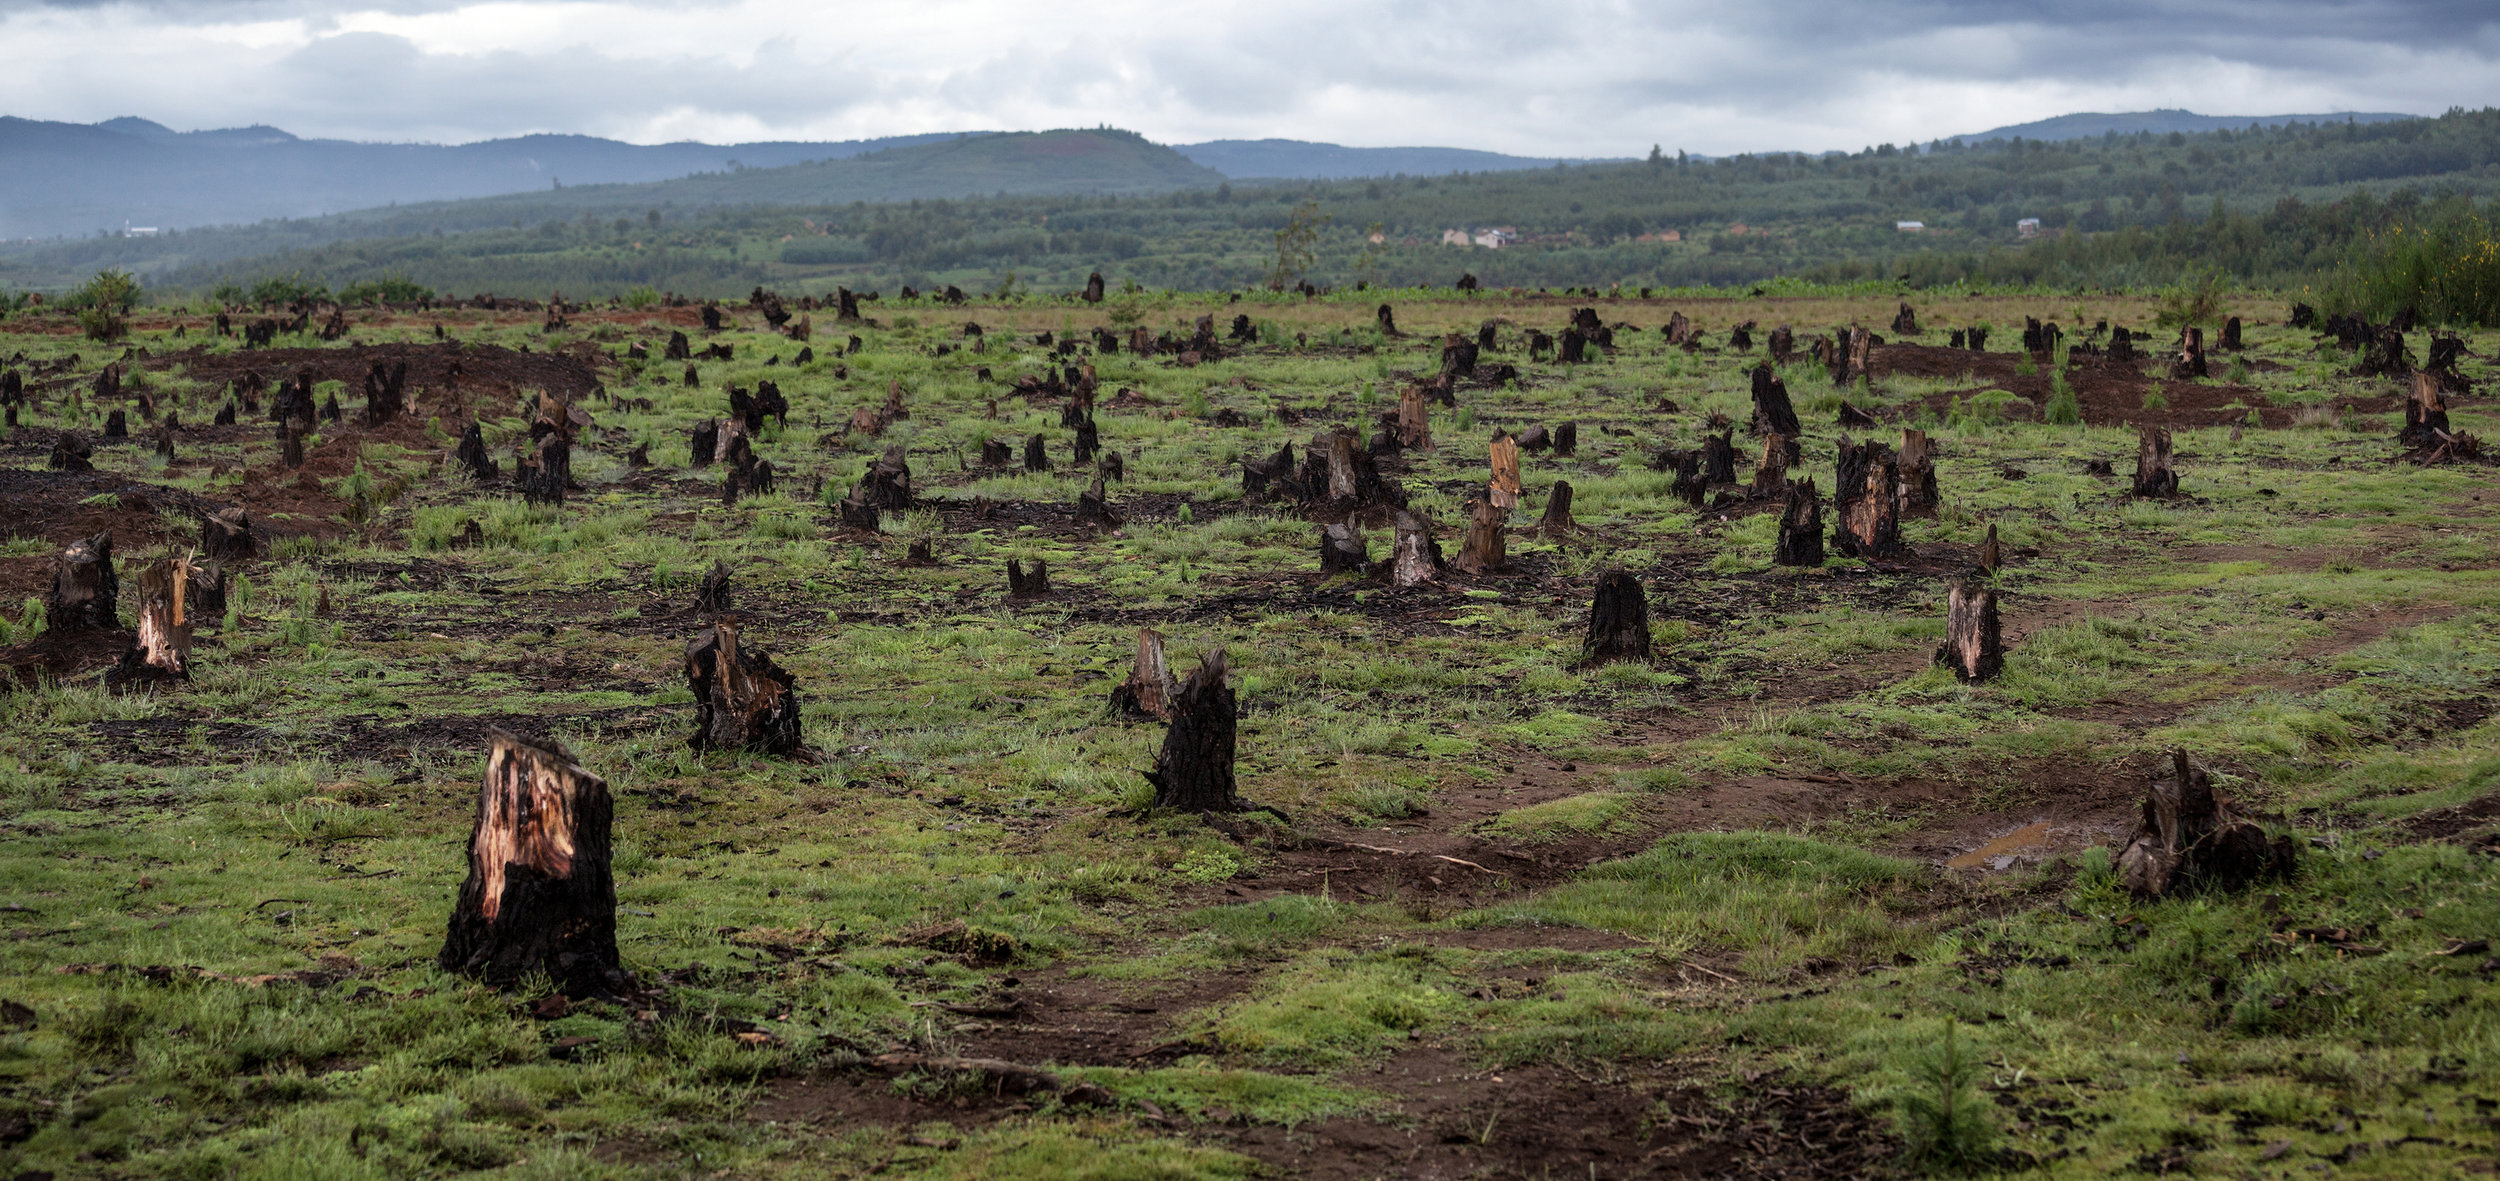 Stumps which are caused by deforestation and slash and burn type of agriculture. Photo credit: Dudarev Mikhail/Shutterstock.com